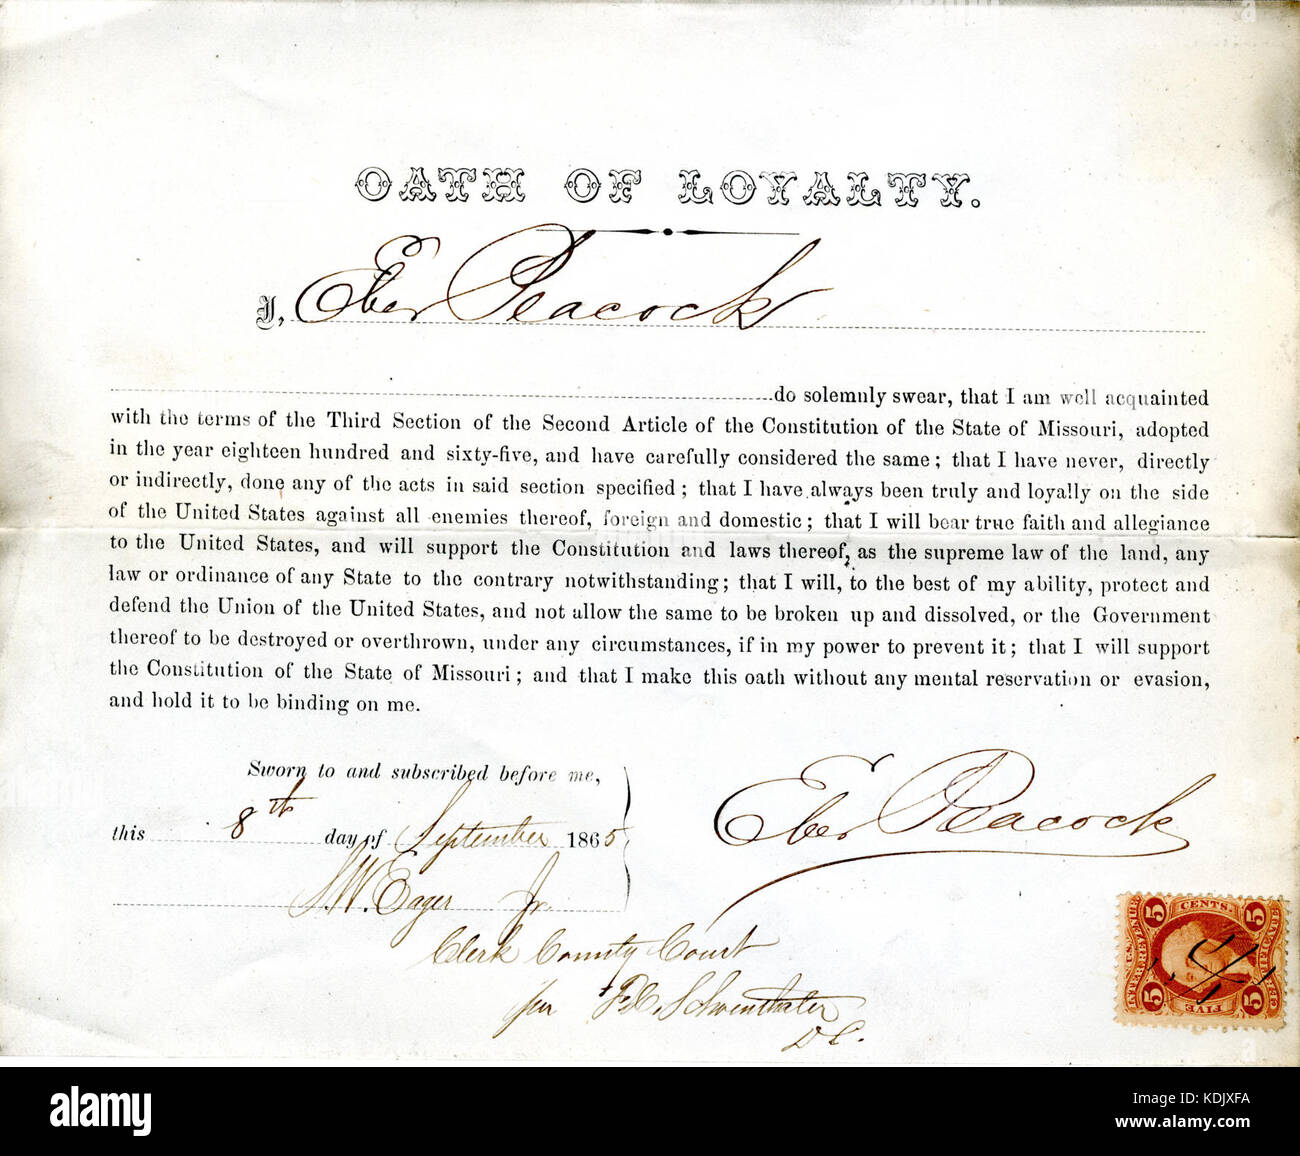 Loyalty oath of Eber Peacock of Missouri, County of St. Louis - Stock Image